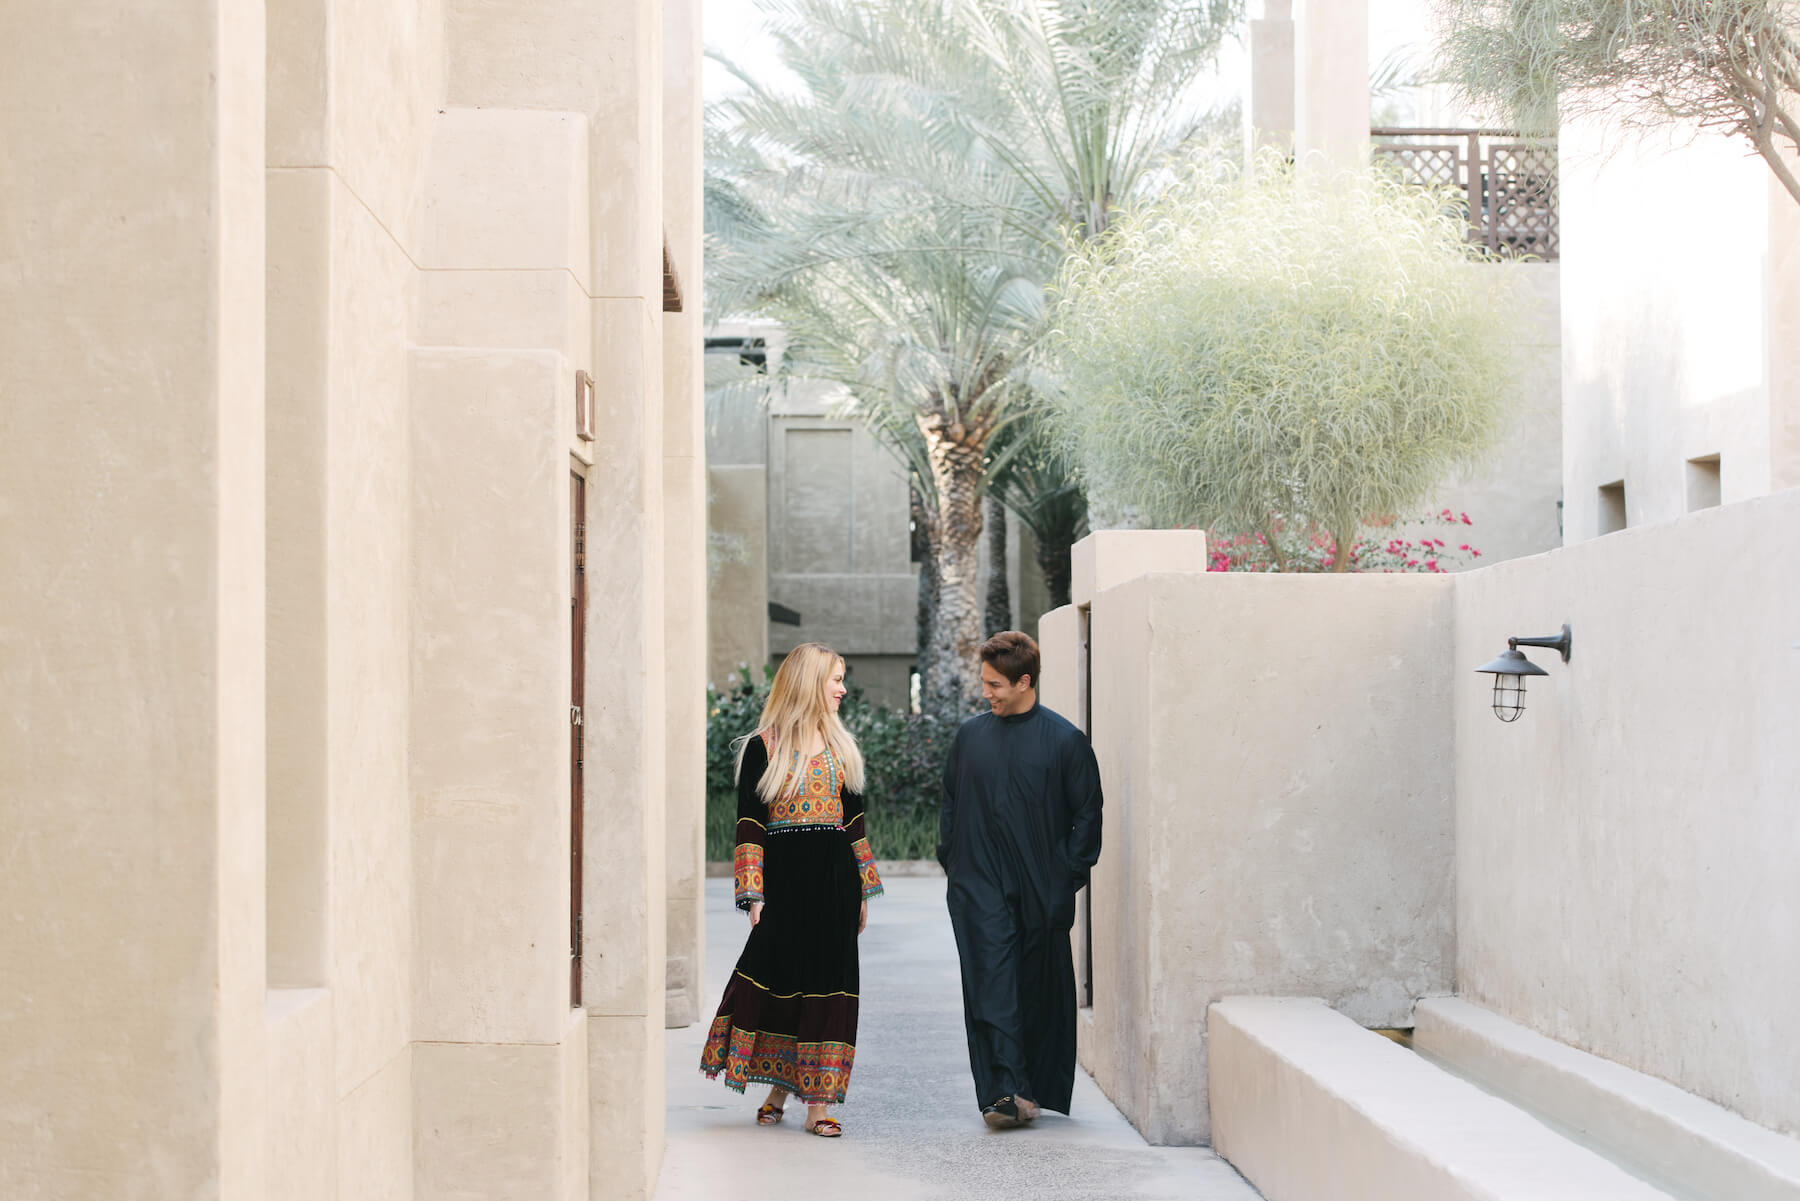 Couple holding hands and walking down pathway together surrounded by palm trees at the Dubai Desert Conservation Reserve